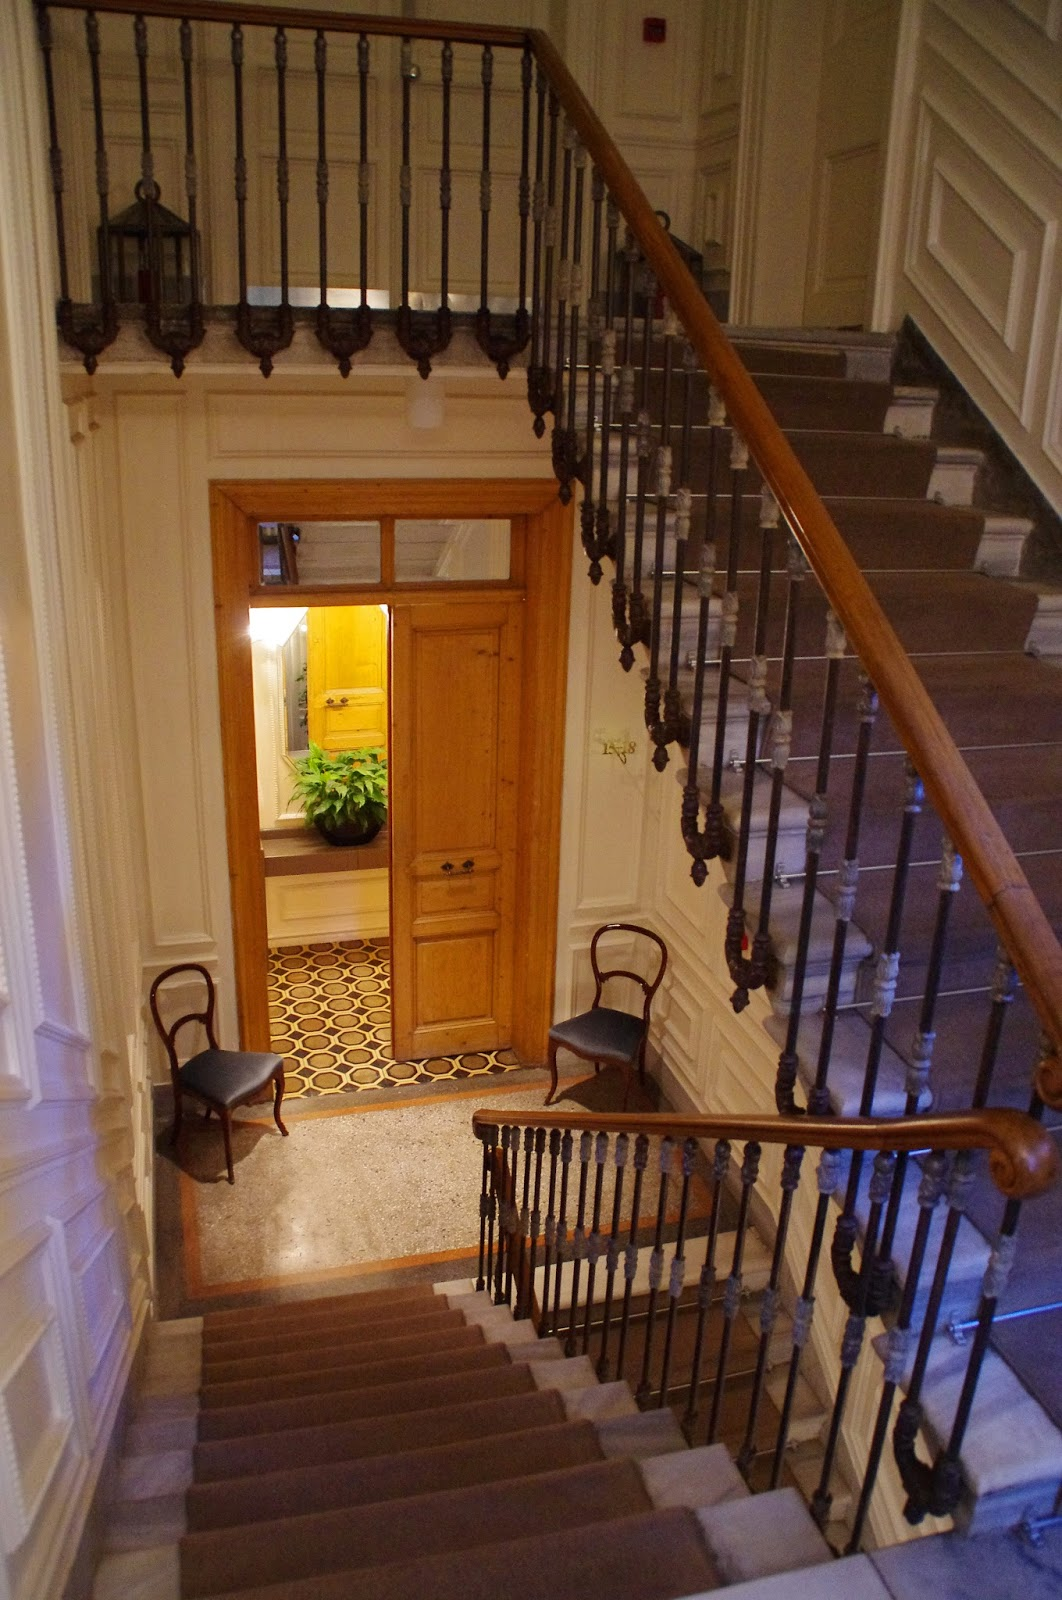 House Hotel Galatasaray Staircase